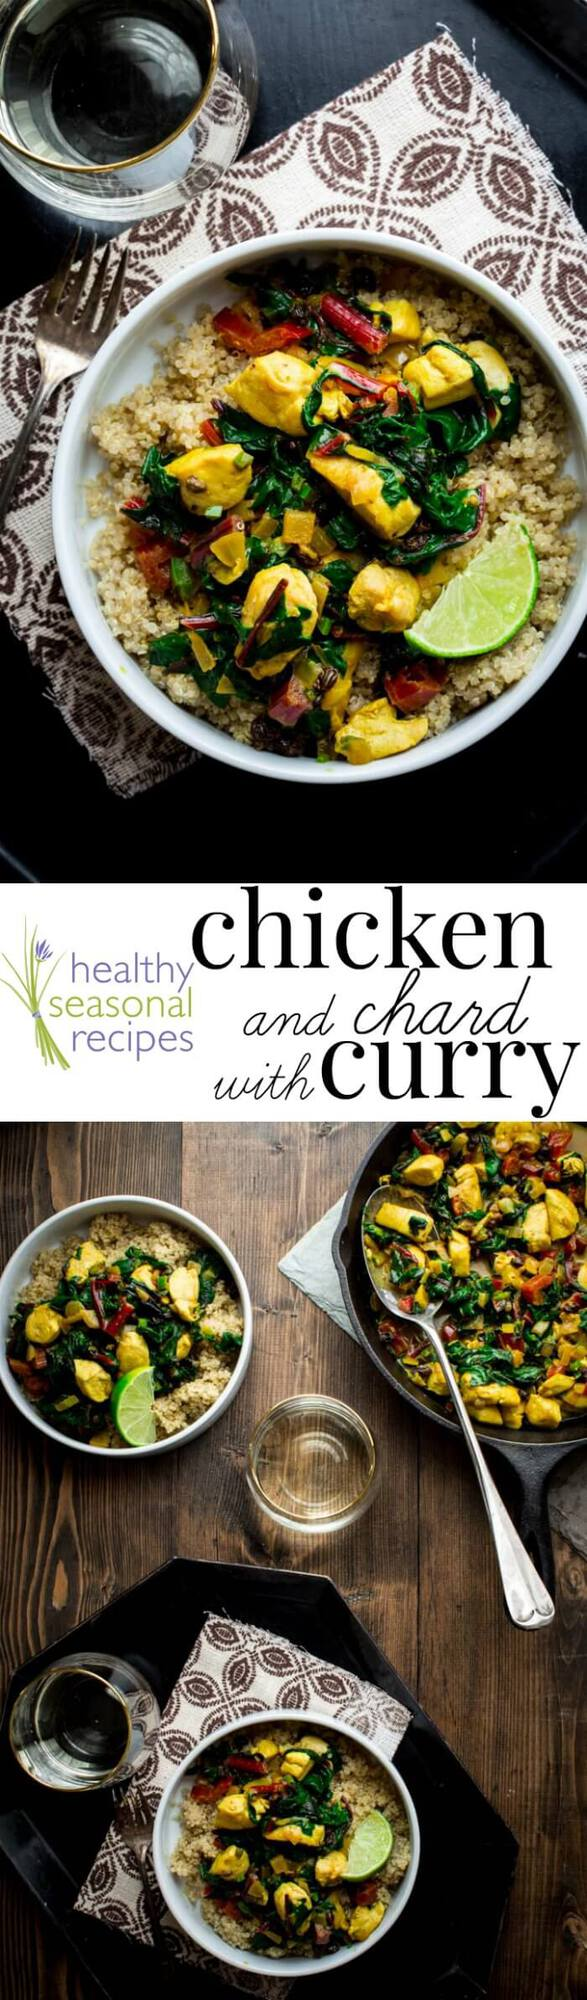 Chicken Chard curry photo collage with text overlay